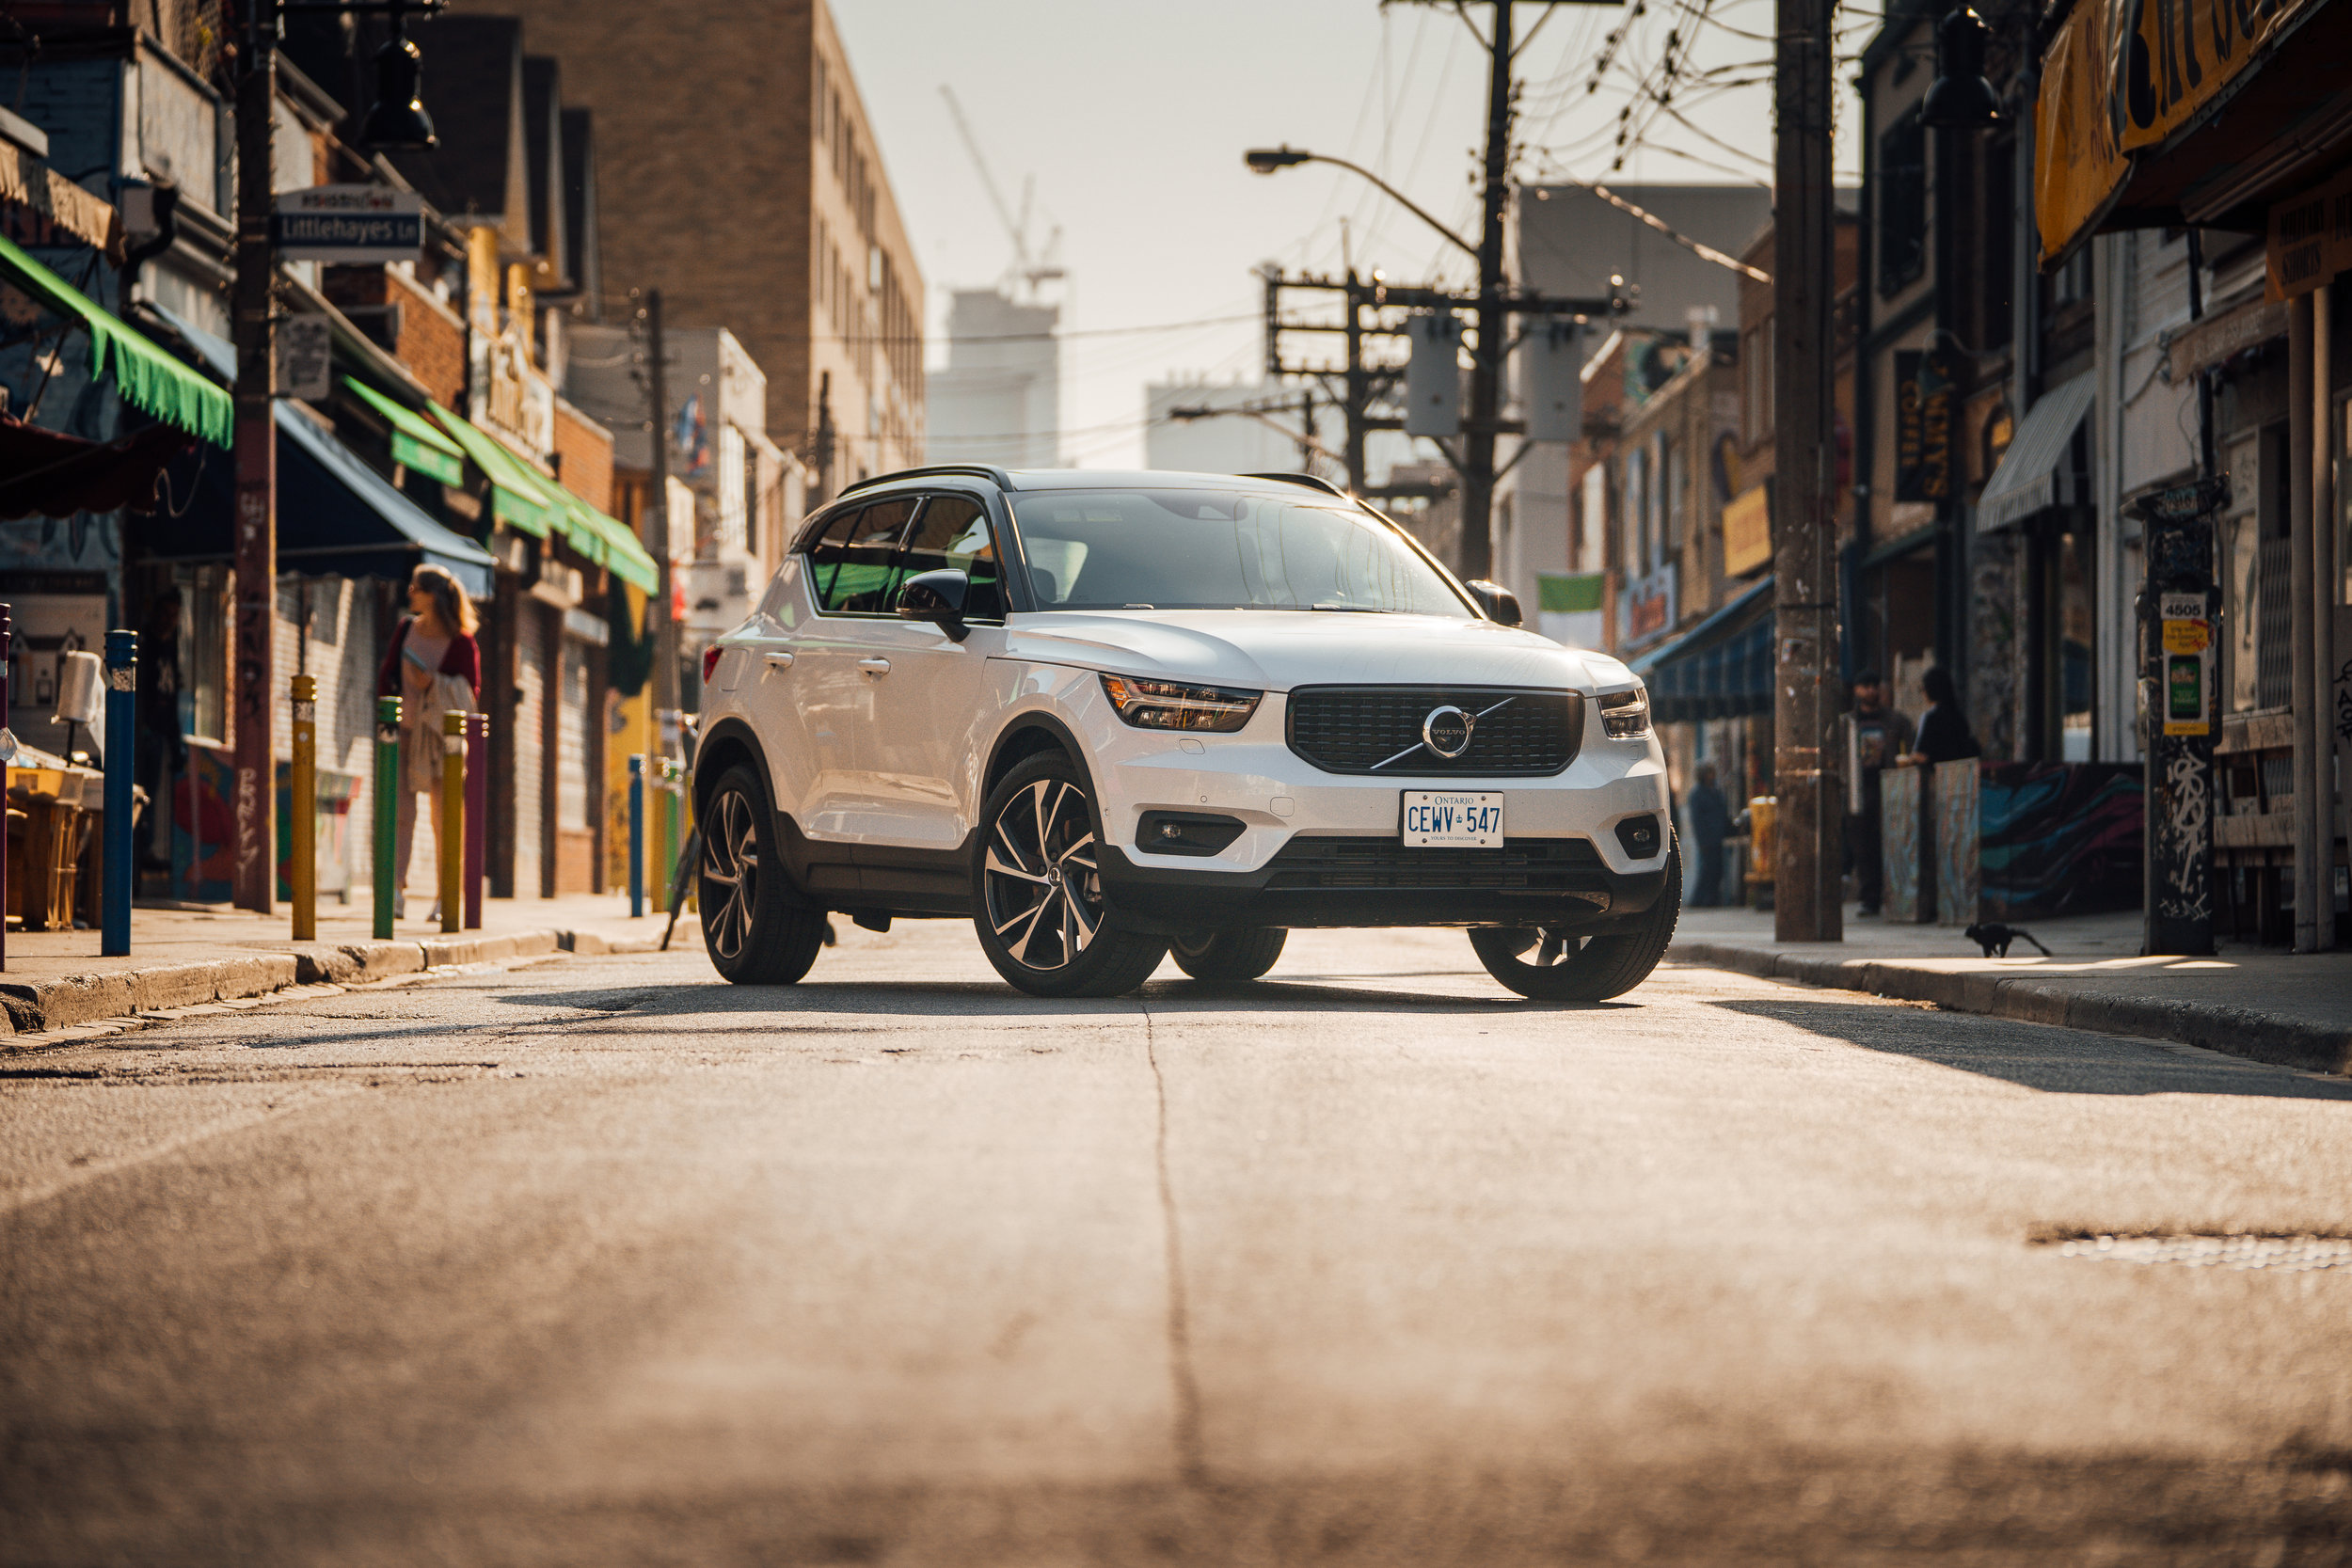 Volvo_XC40-DownTown (29 of 34).jpg